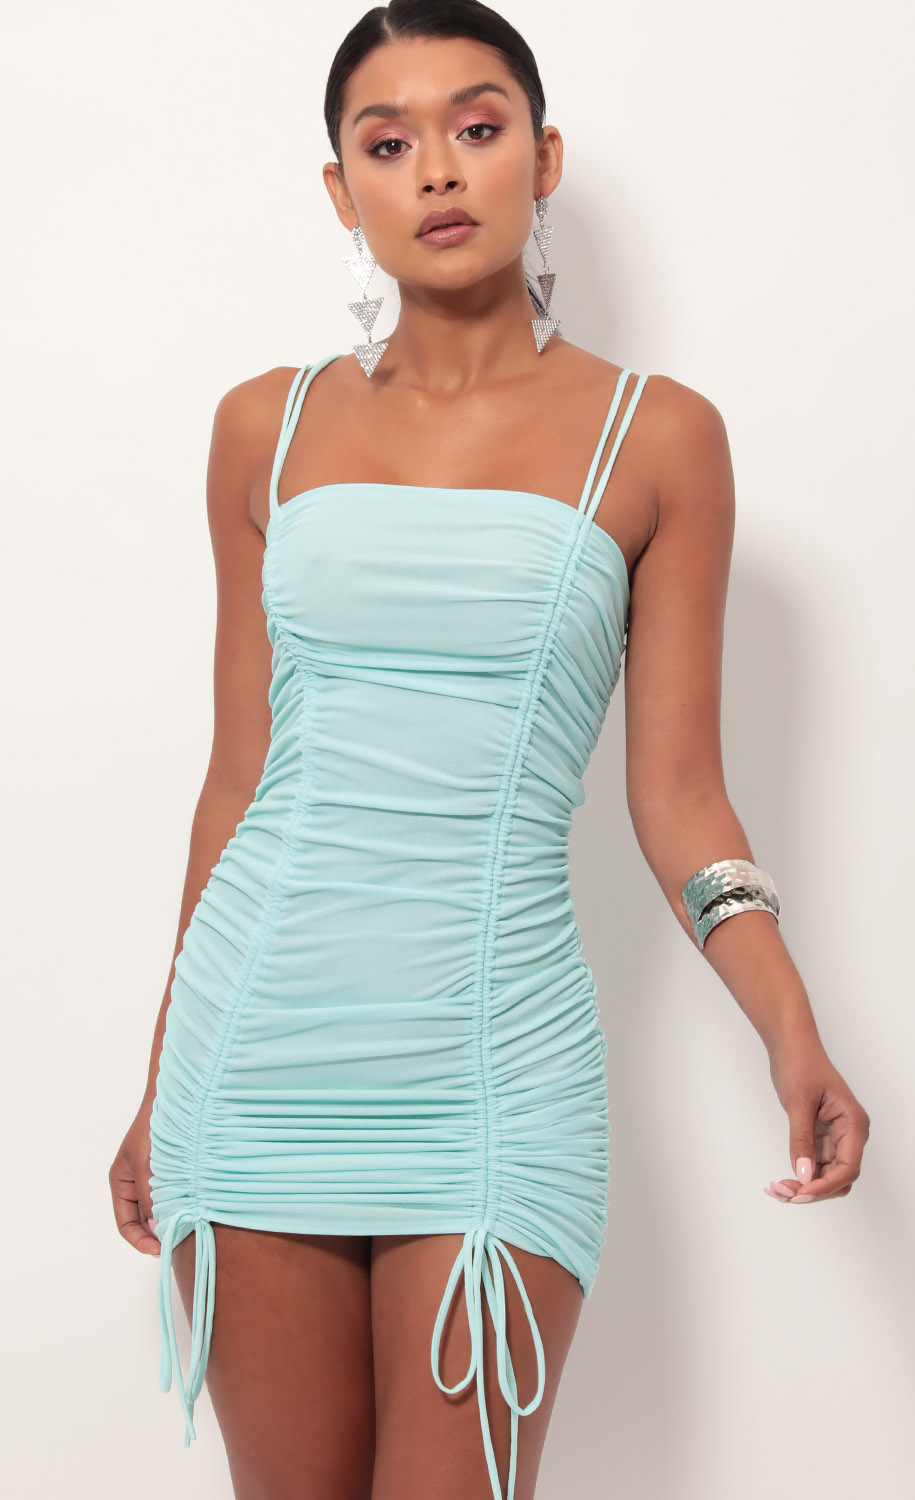 Double Trouble Ruched Dress in Aqua